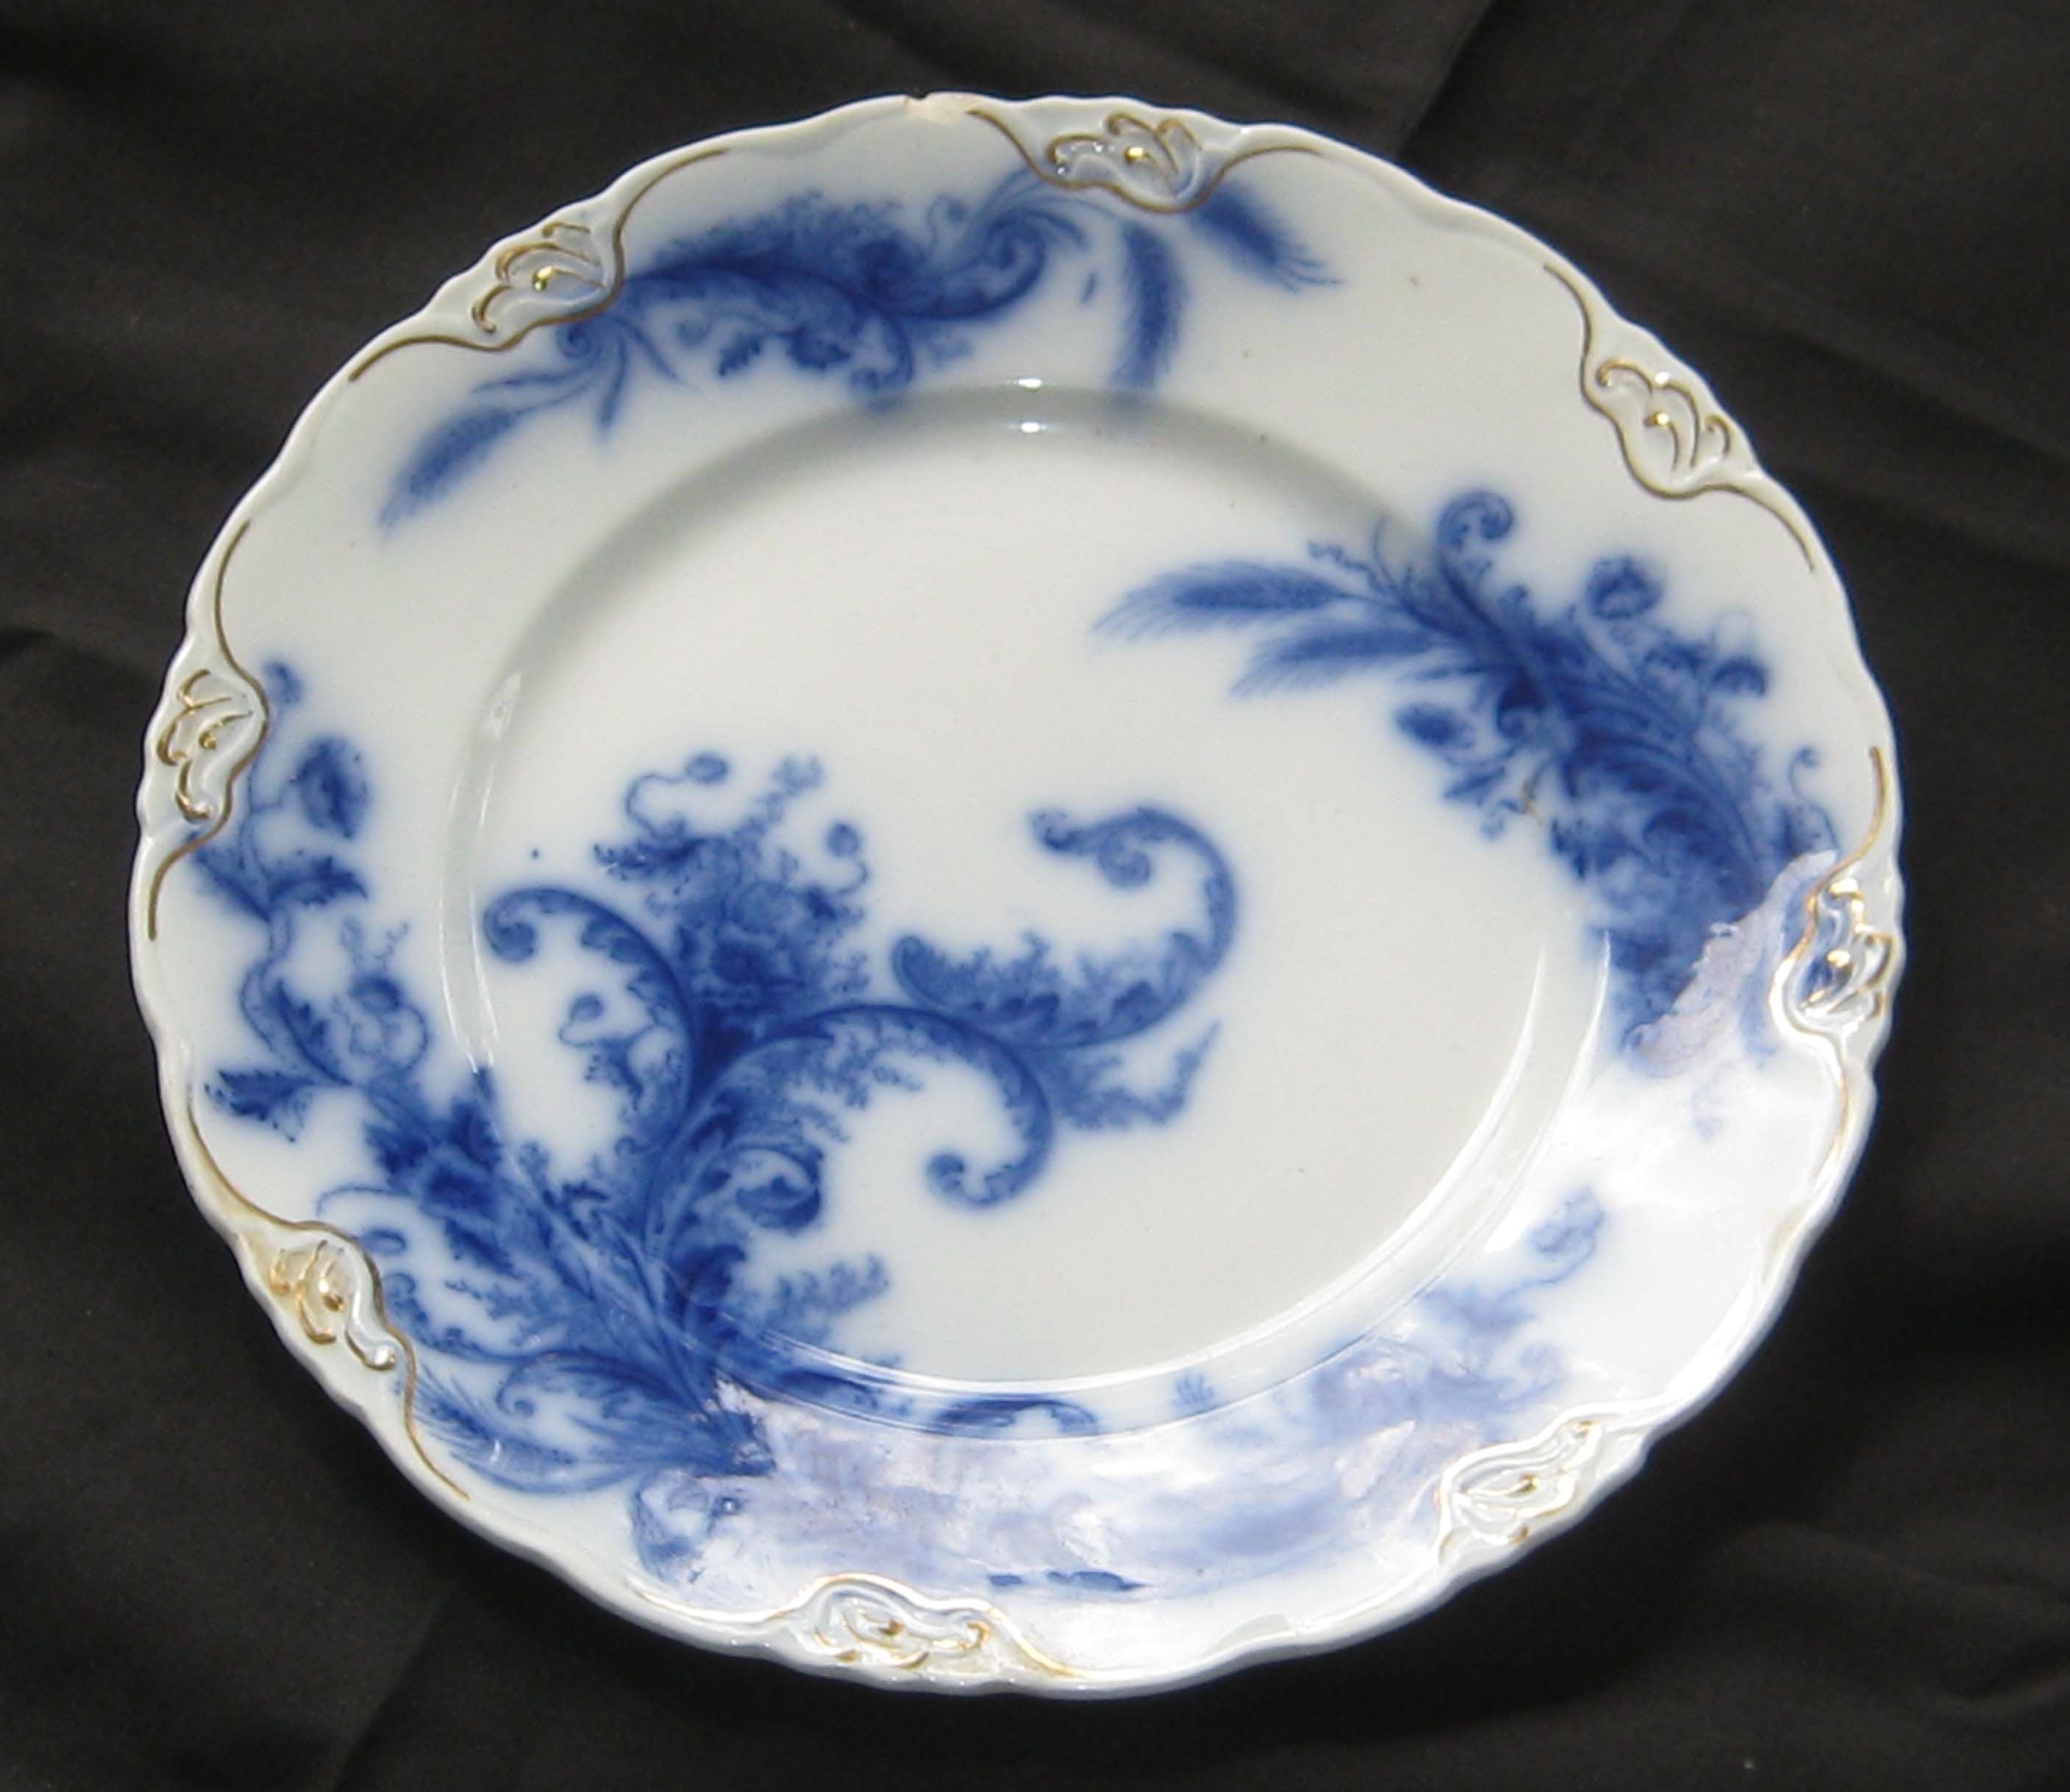 Flow Blue - How to ID and Value the Collectible Blue and White Antique China